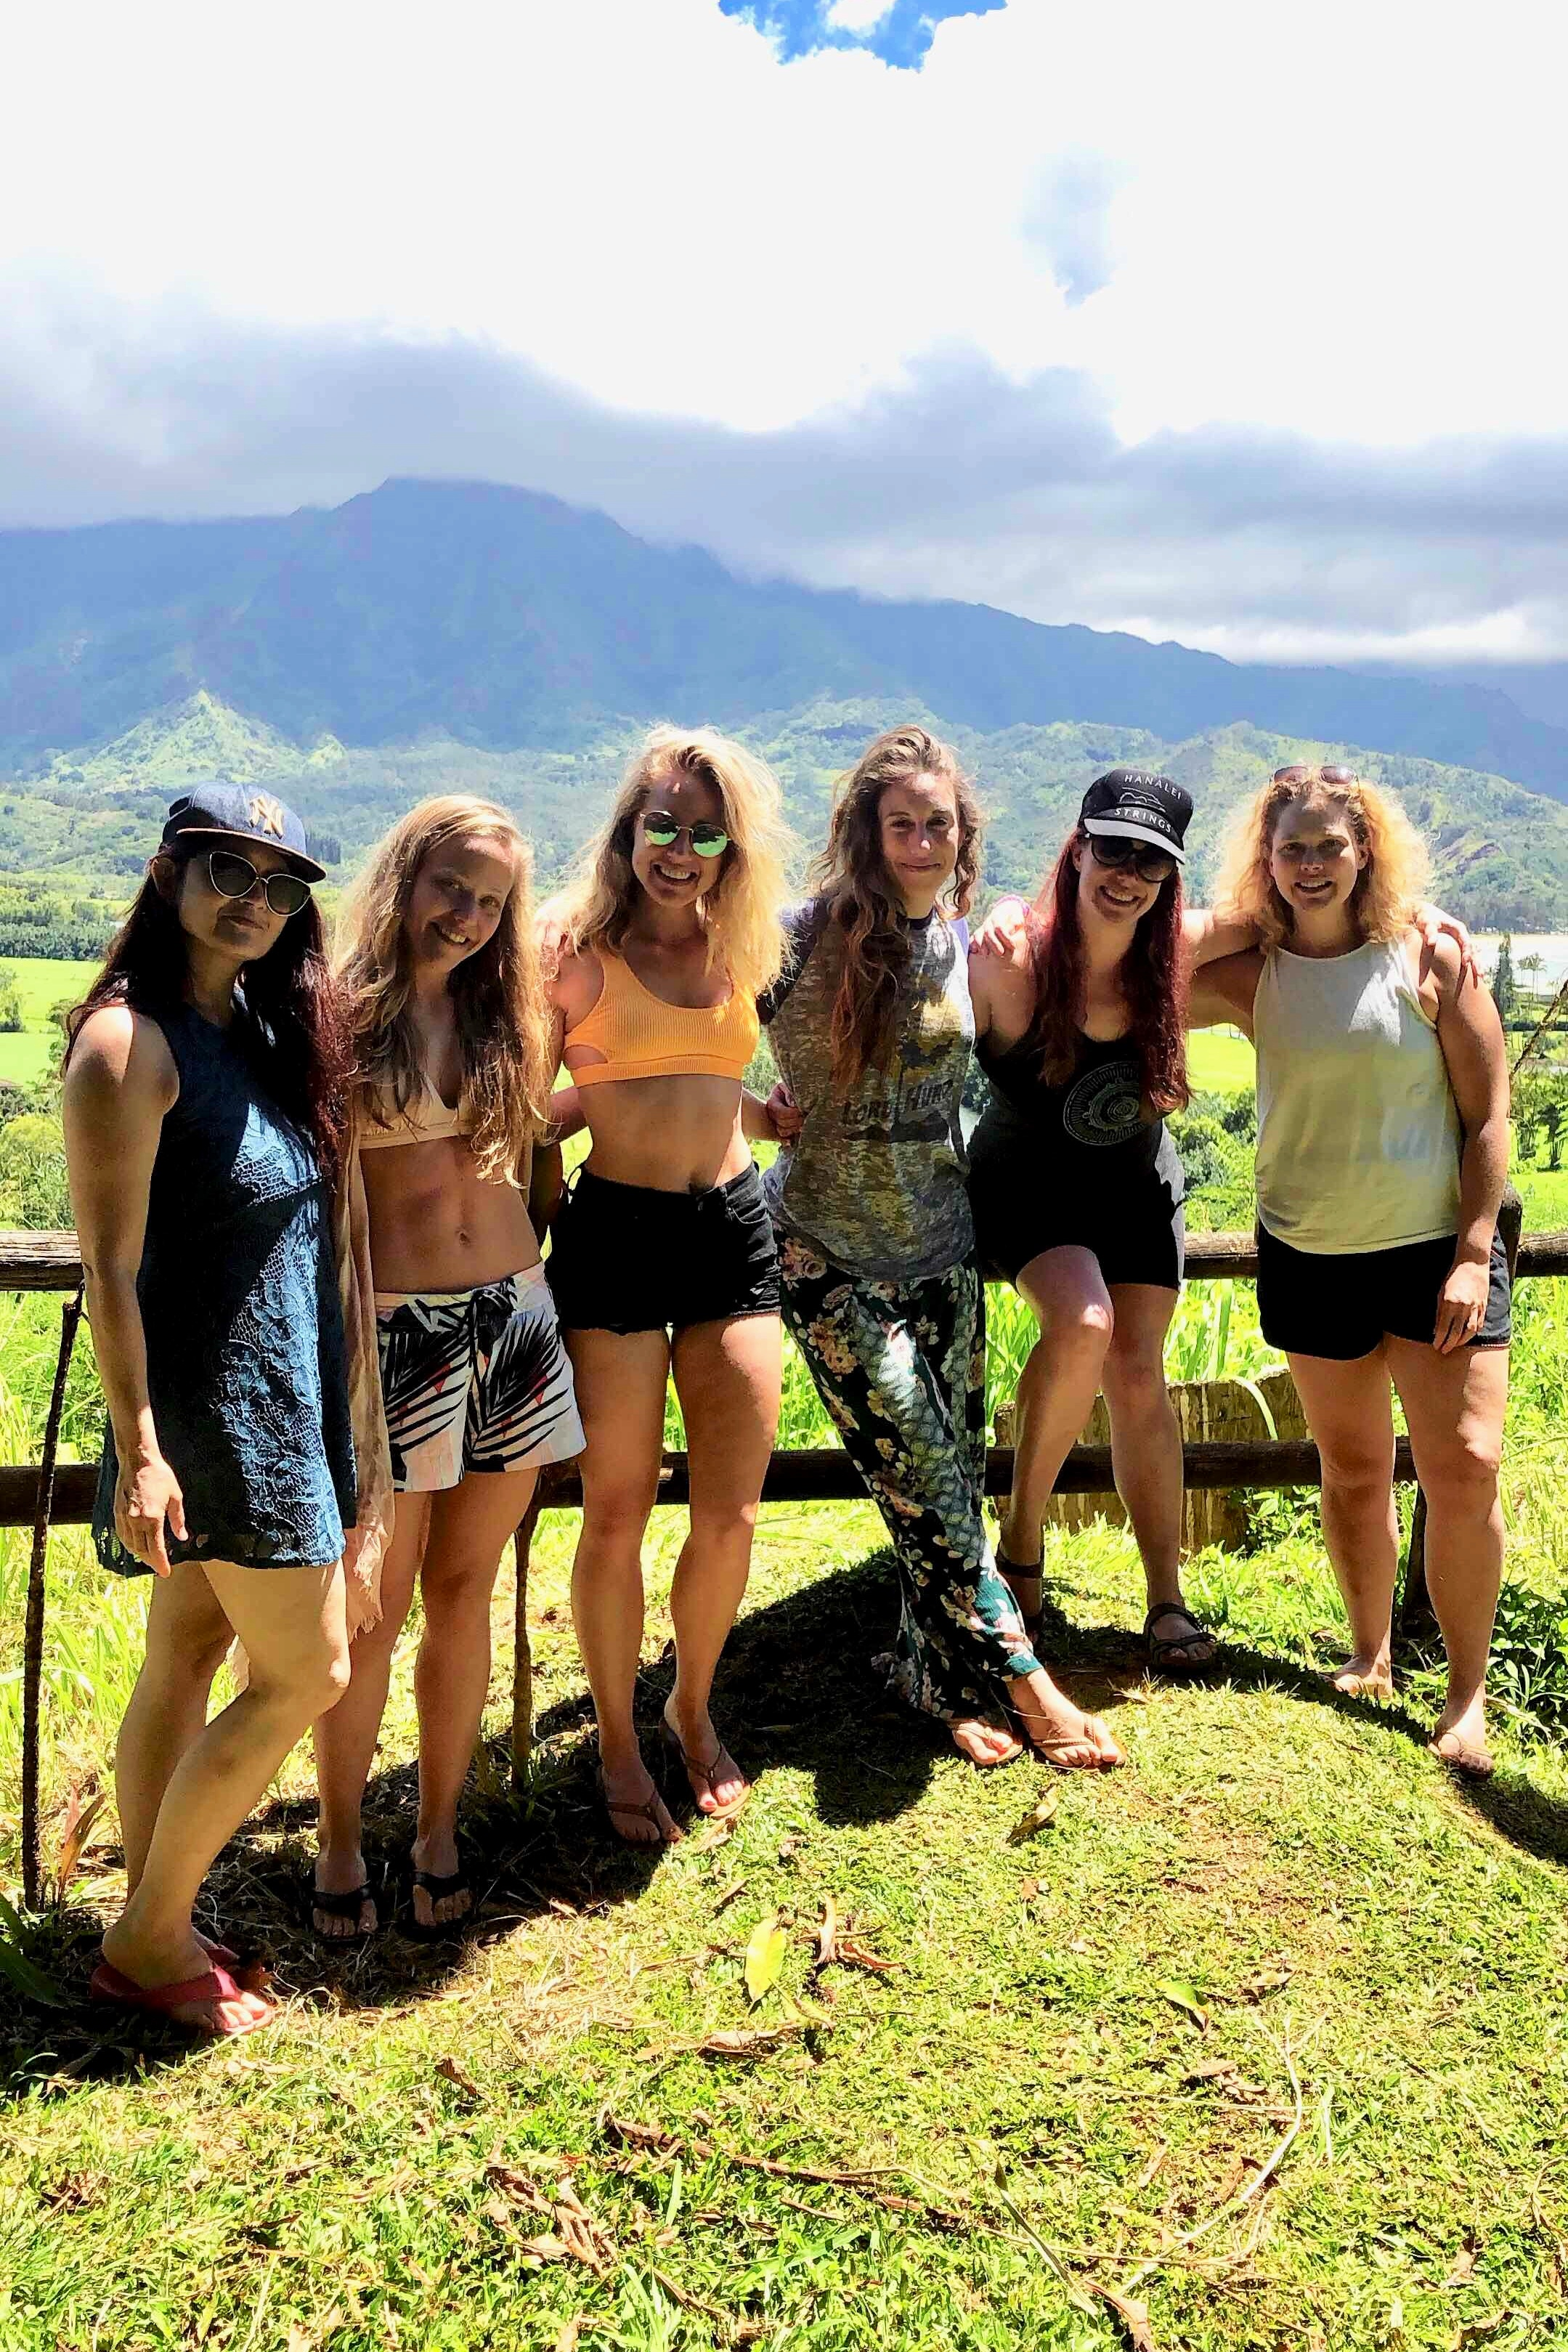 The view from Nourish Hanalei, with my retreat ladies.